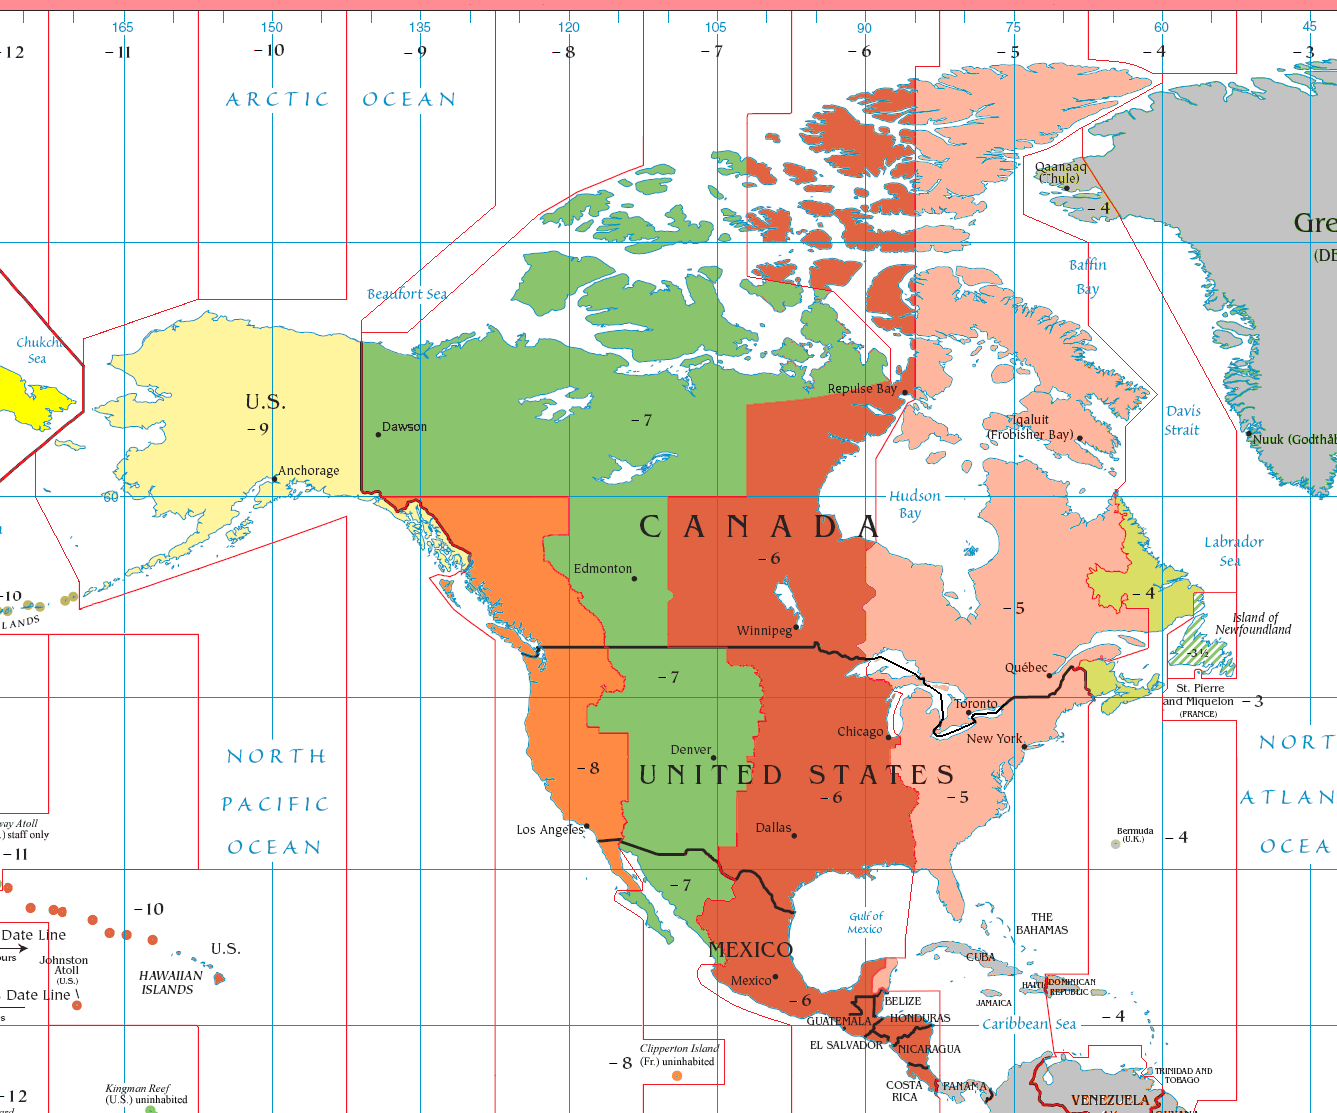 Standard Time Zones of North America